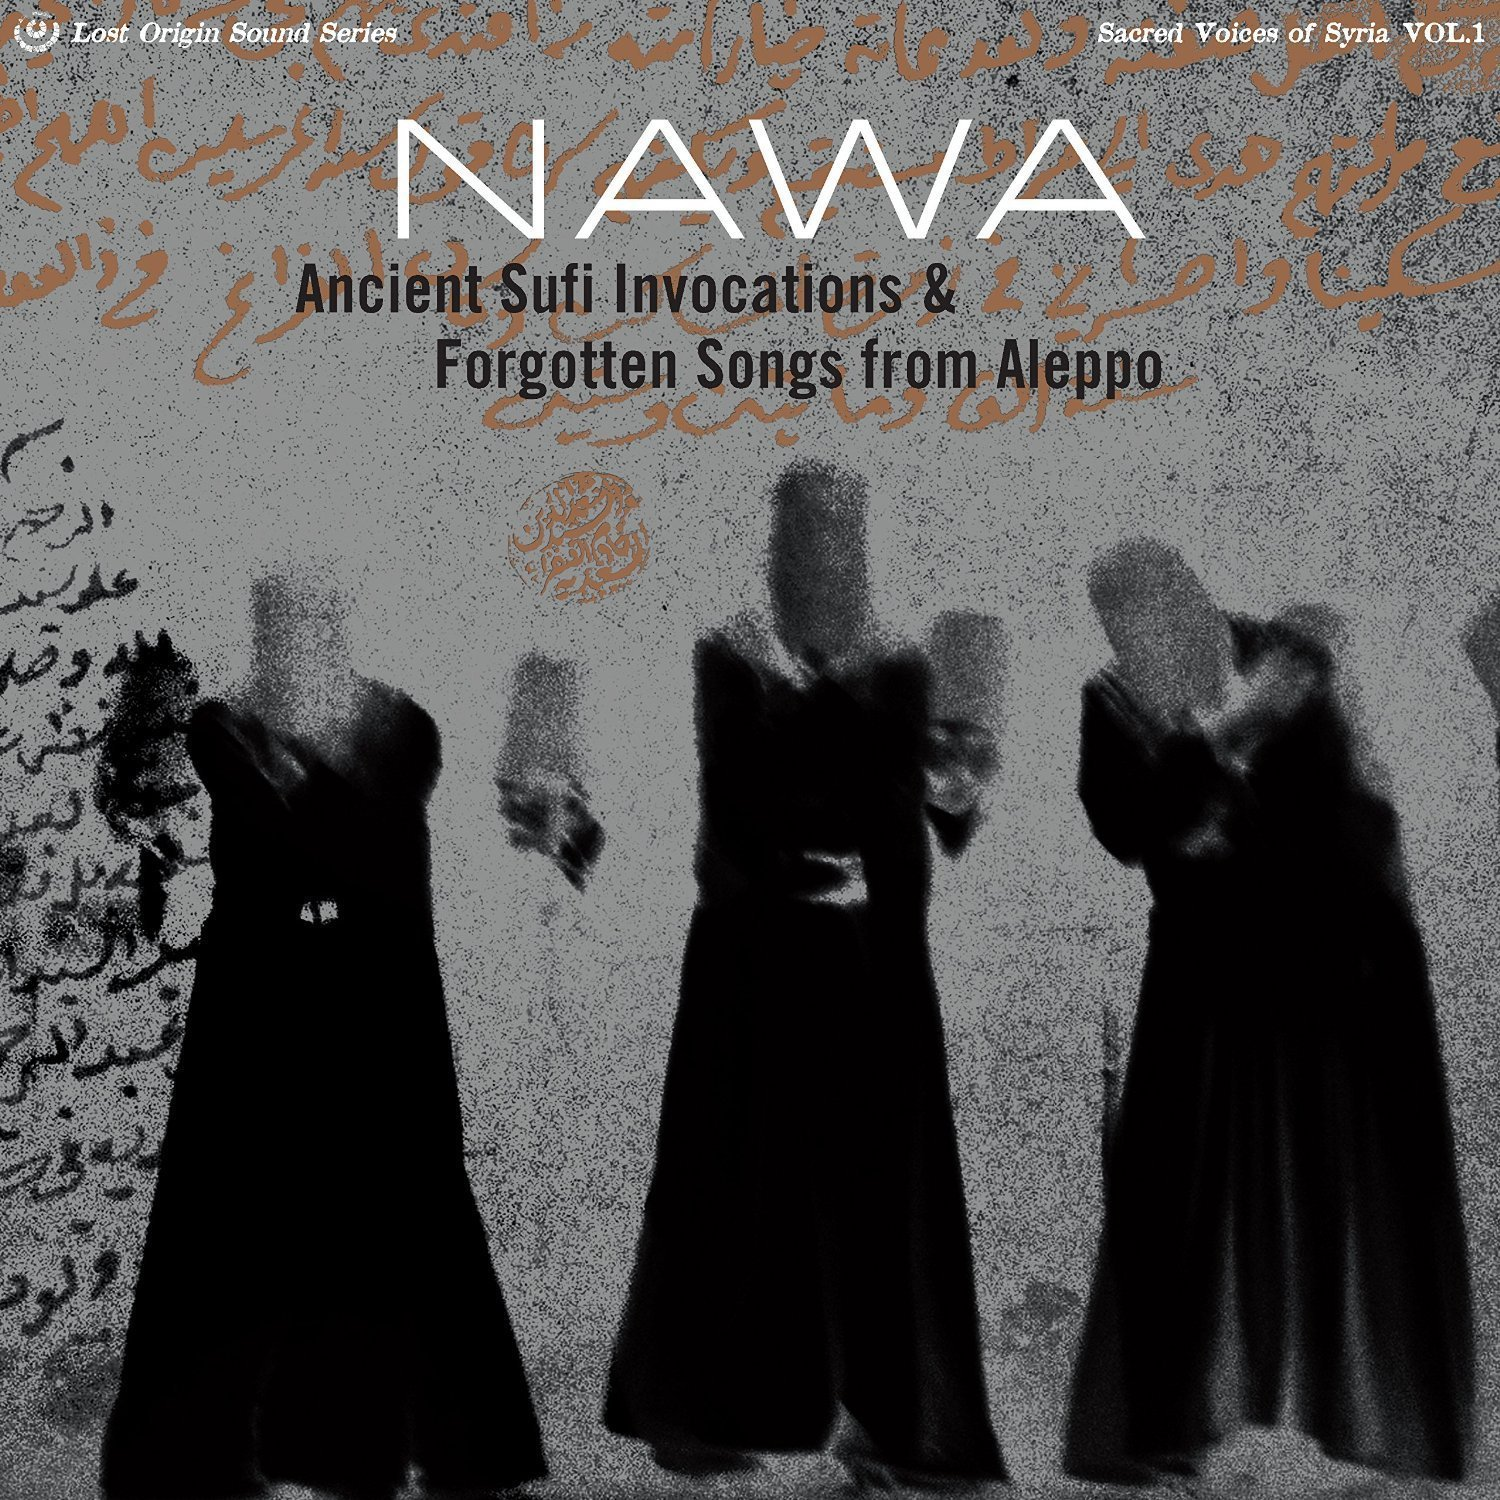 Ancient Sufi Invocations & Forgotten Songs Aleppo